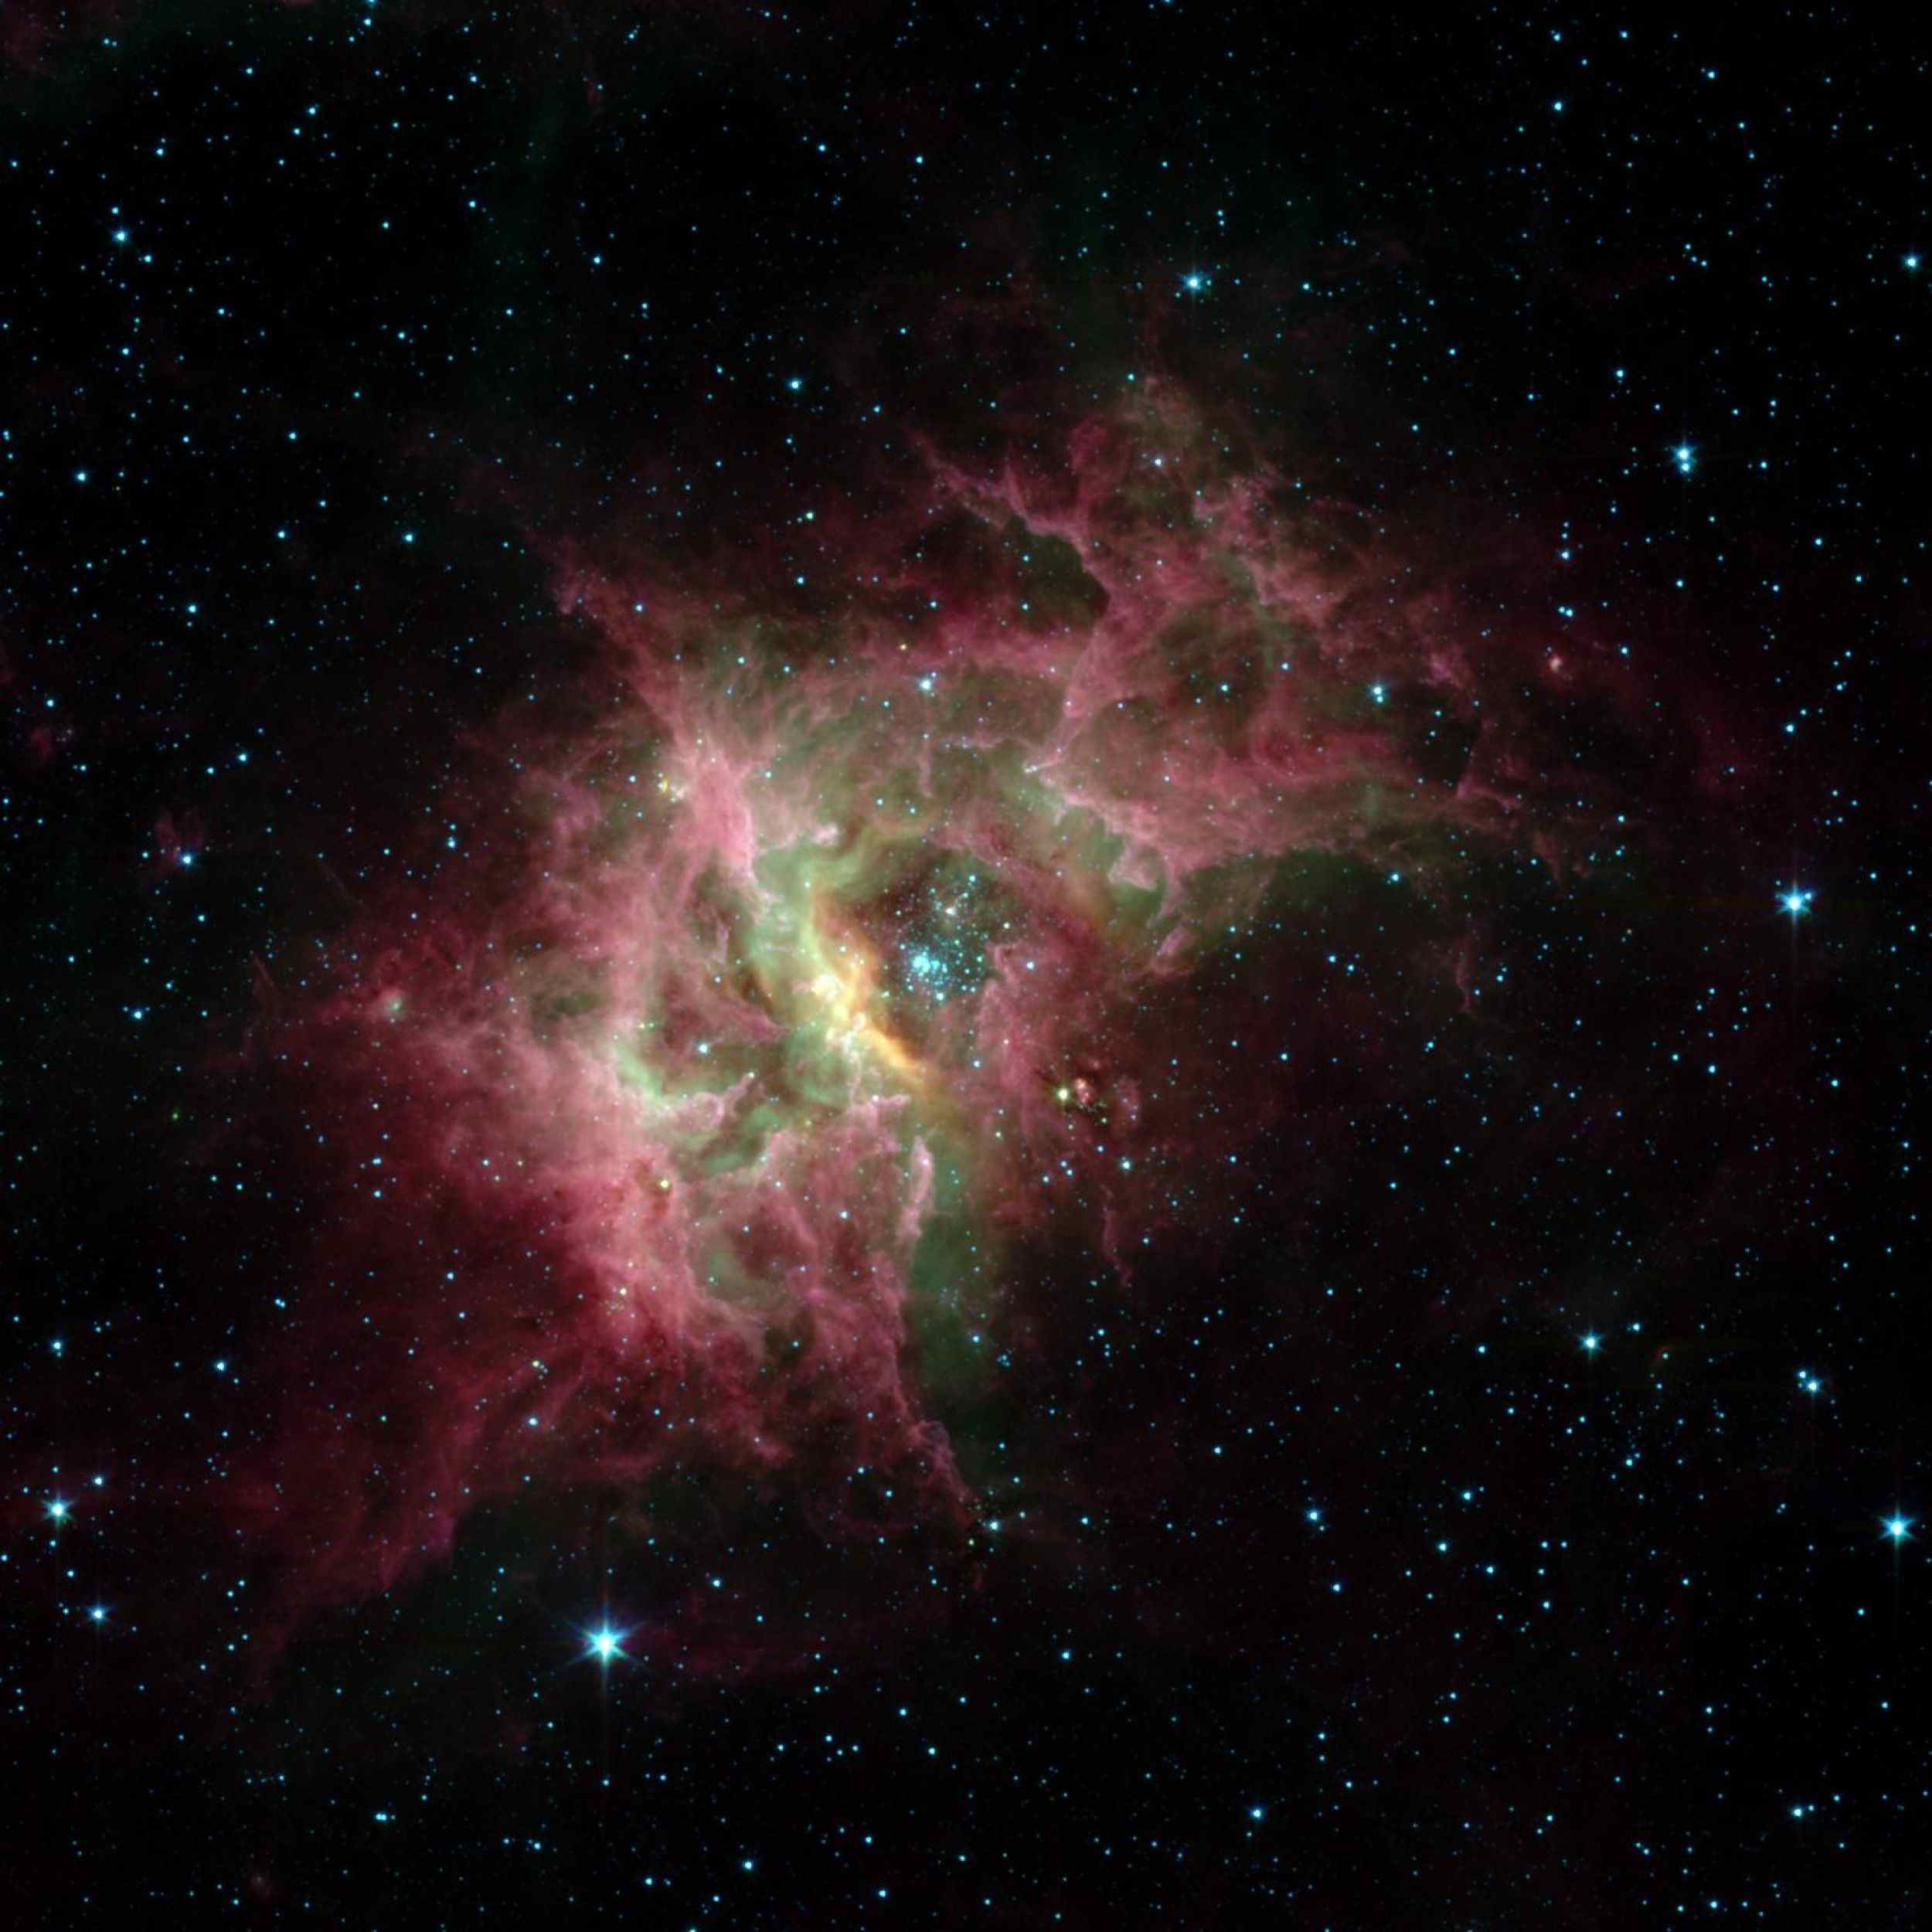 Space Images | Stellar Jewels Shine in New Spitzer Image